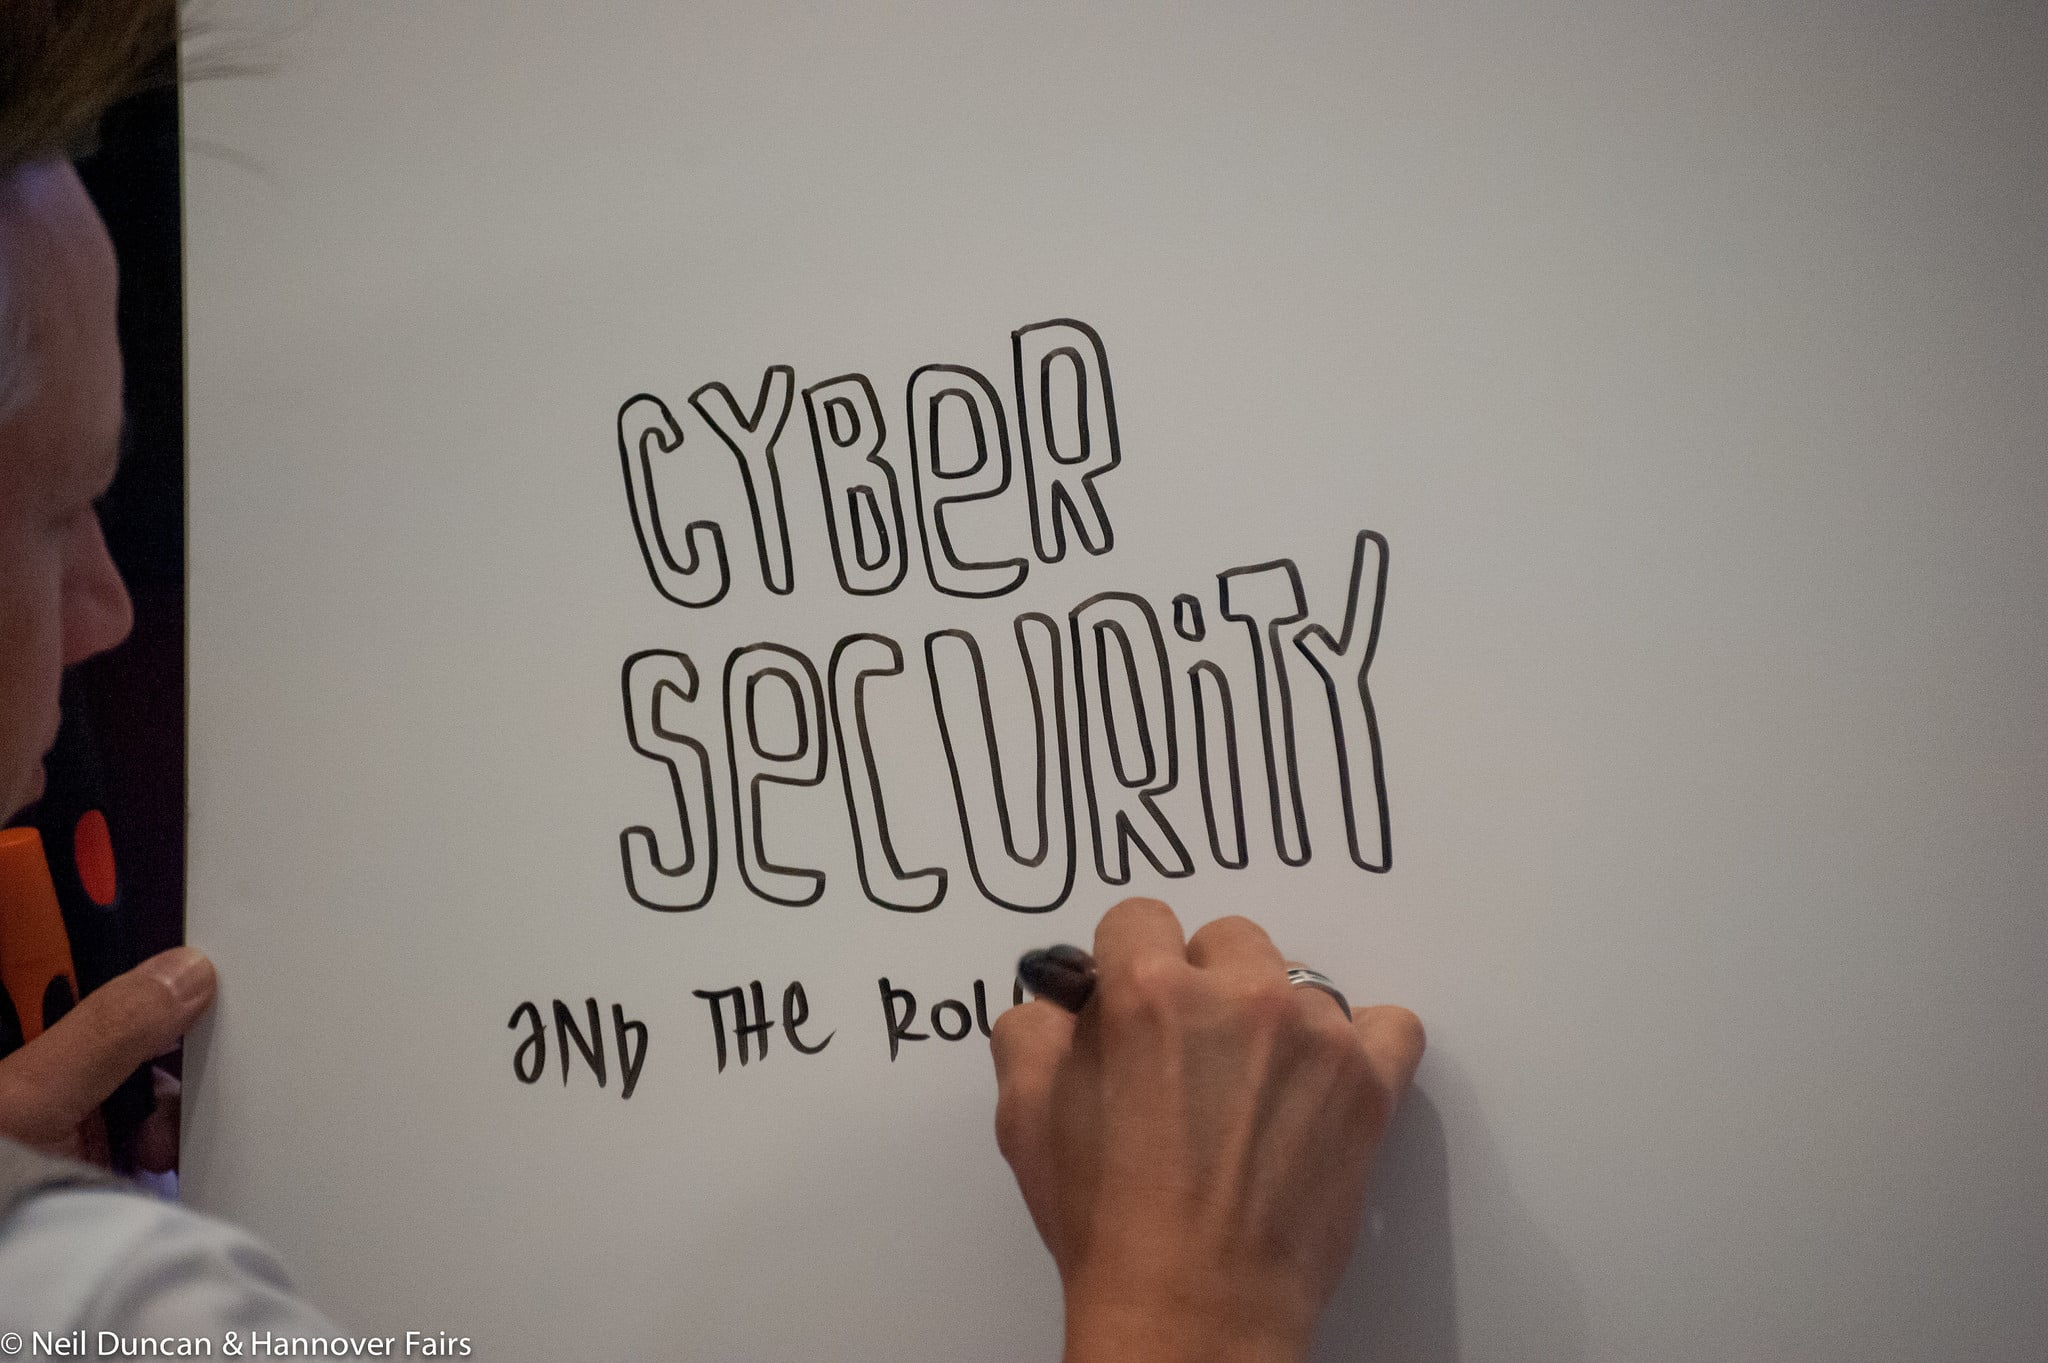 5 steps for SMEs to help prevent cyber attacks